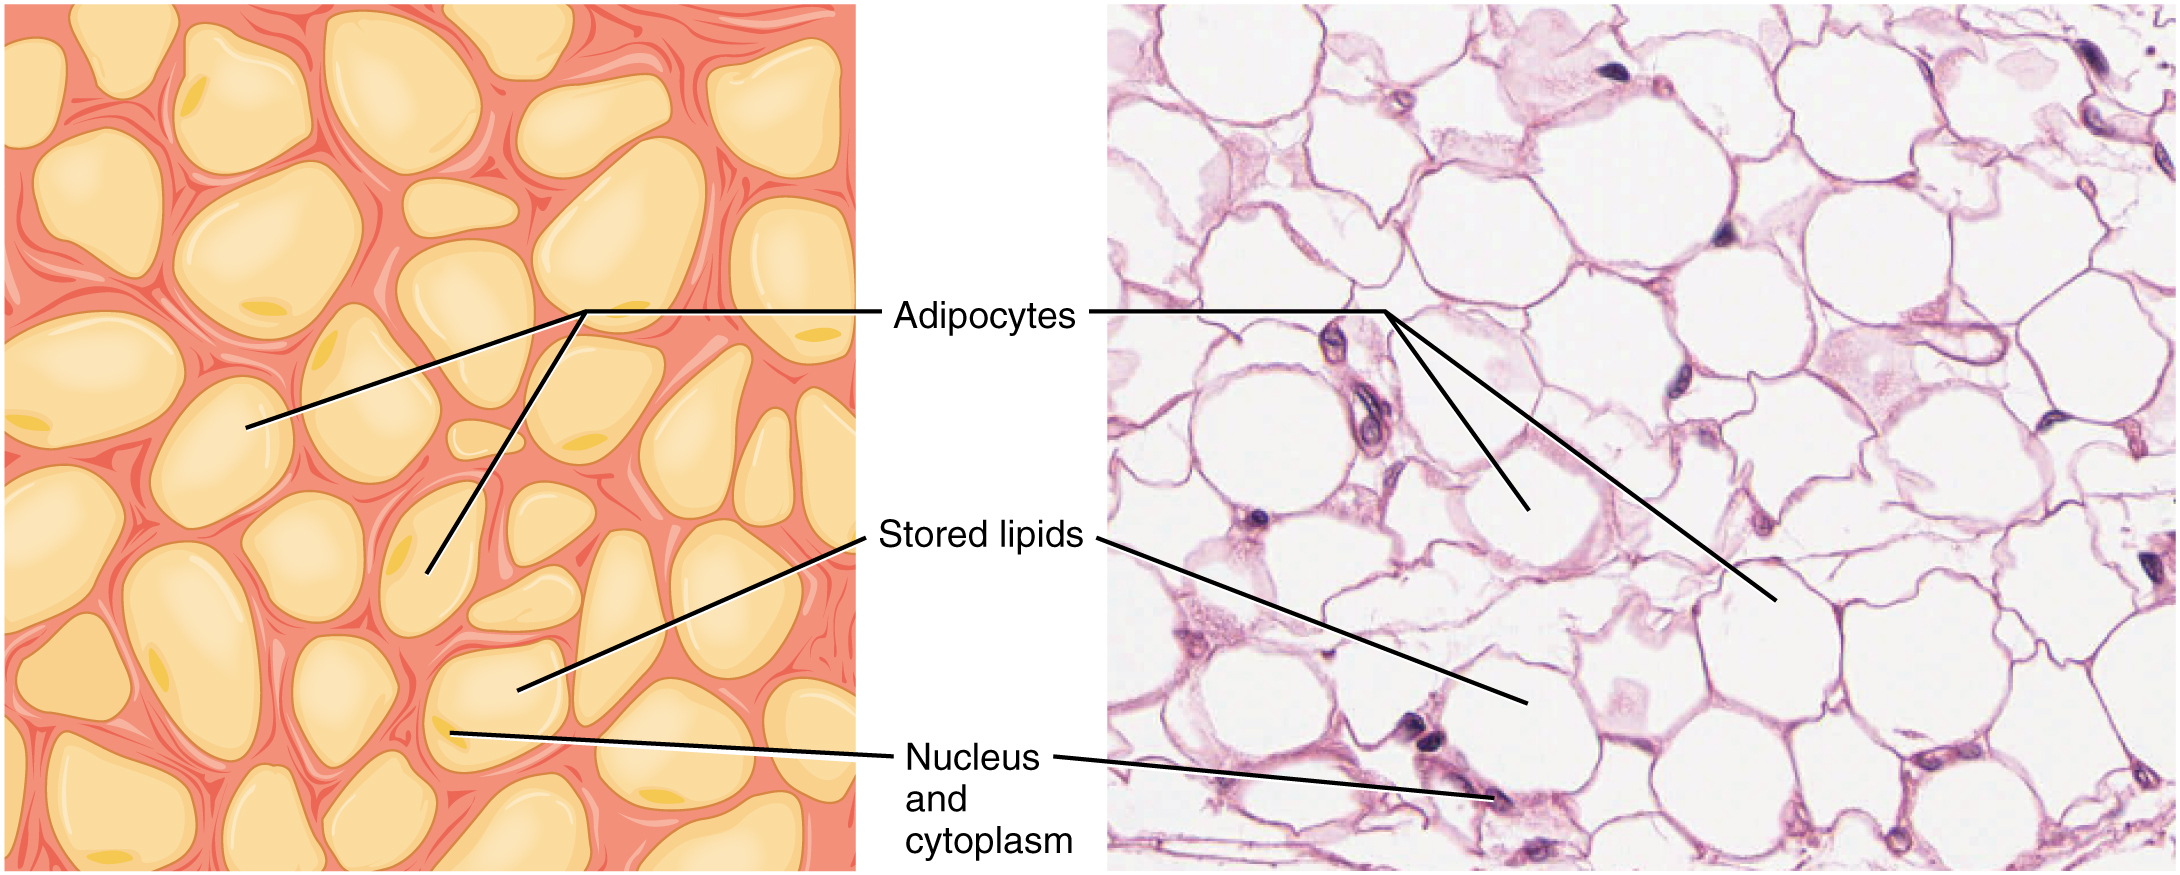 Connective Tissue Supports and Protects · Anatomy and Physiology